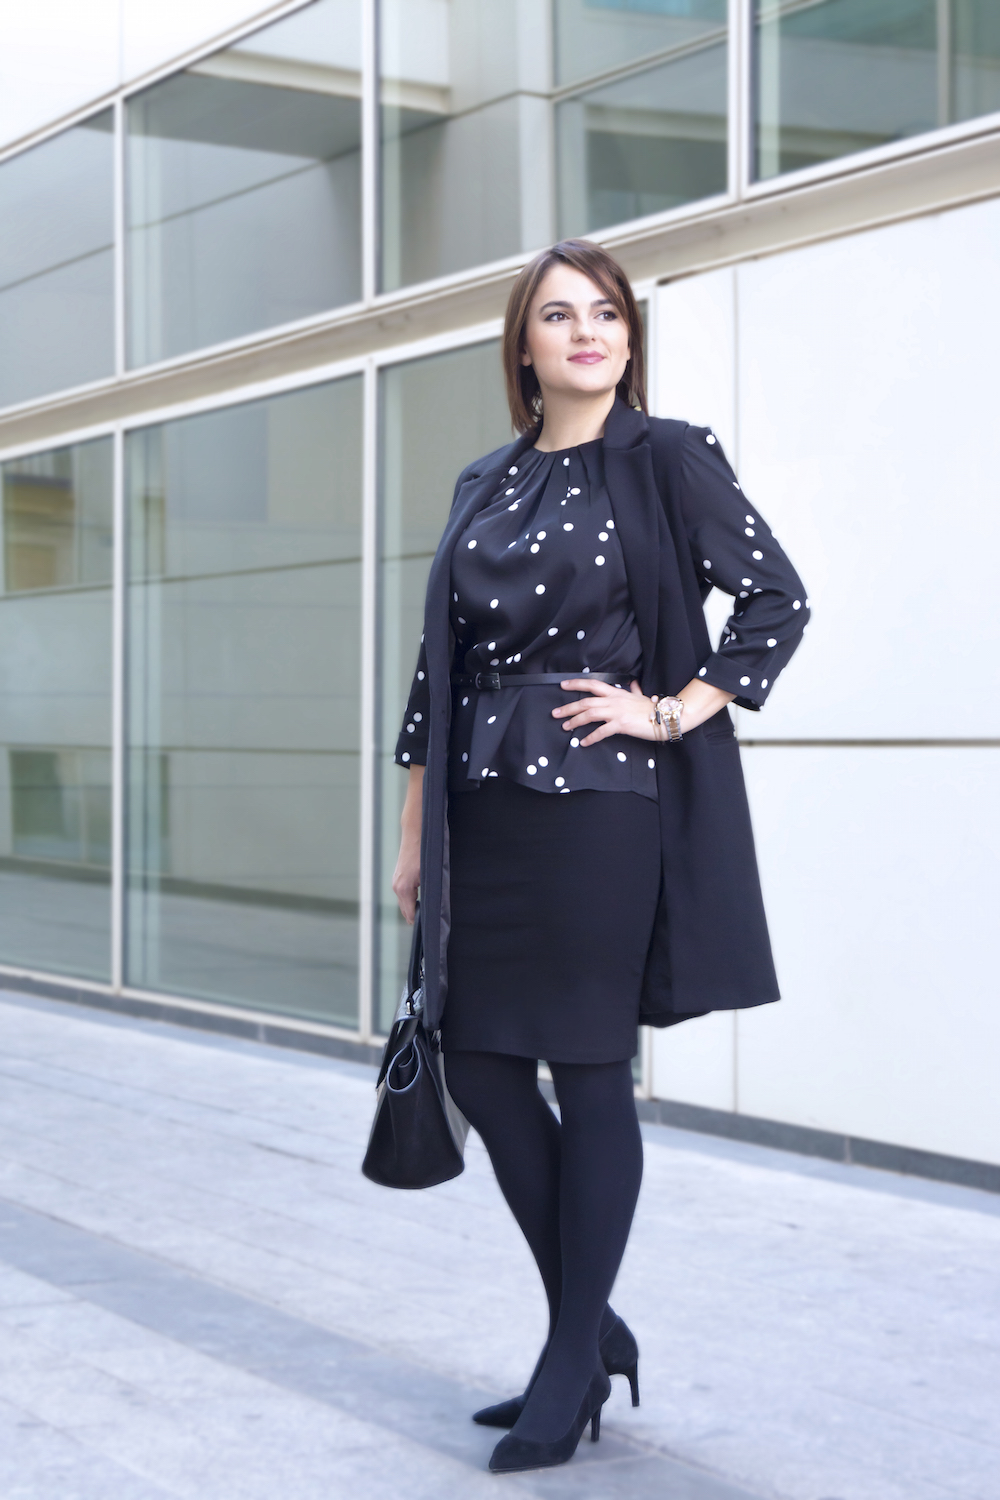 lady wearing a black pencil skirt and black coat